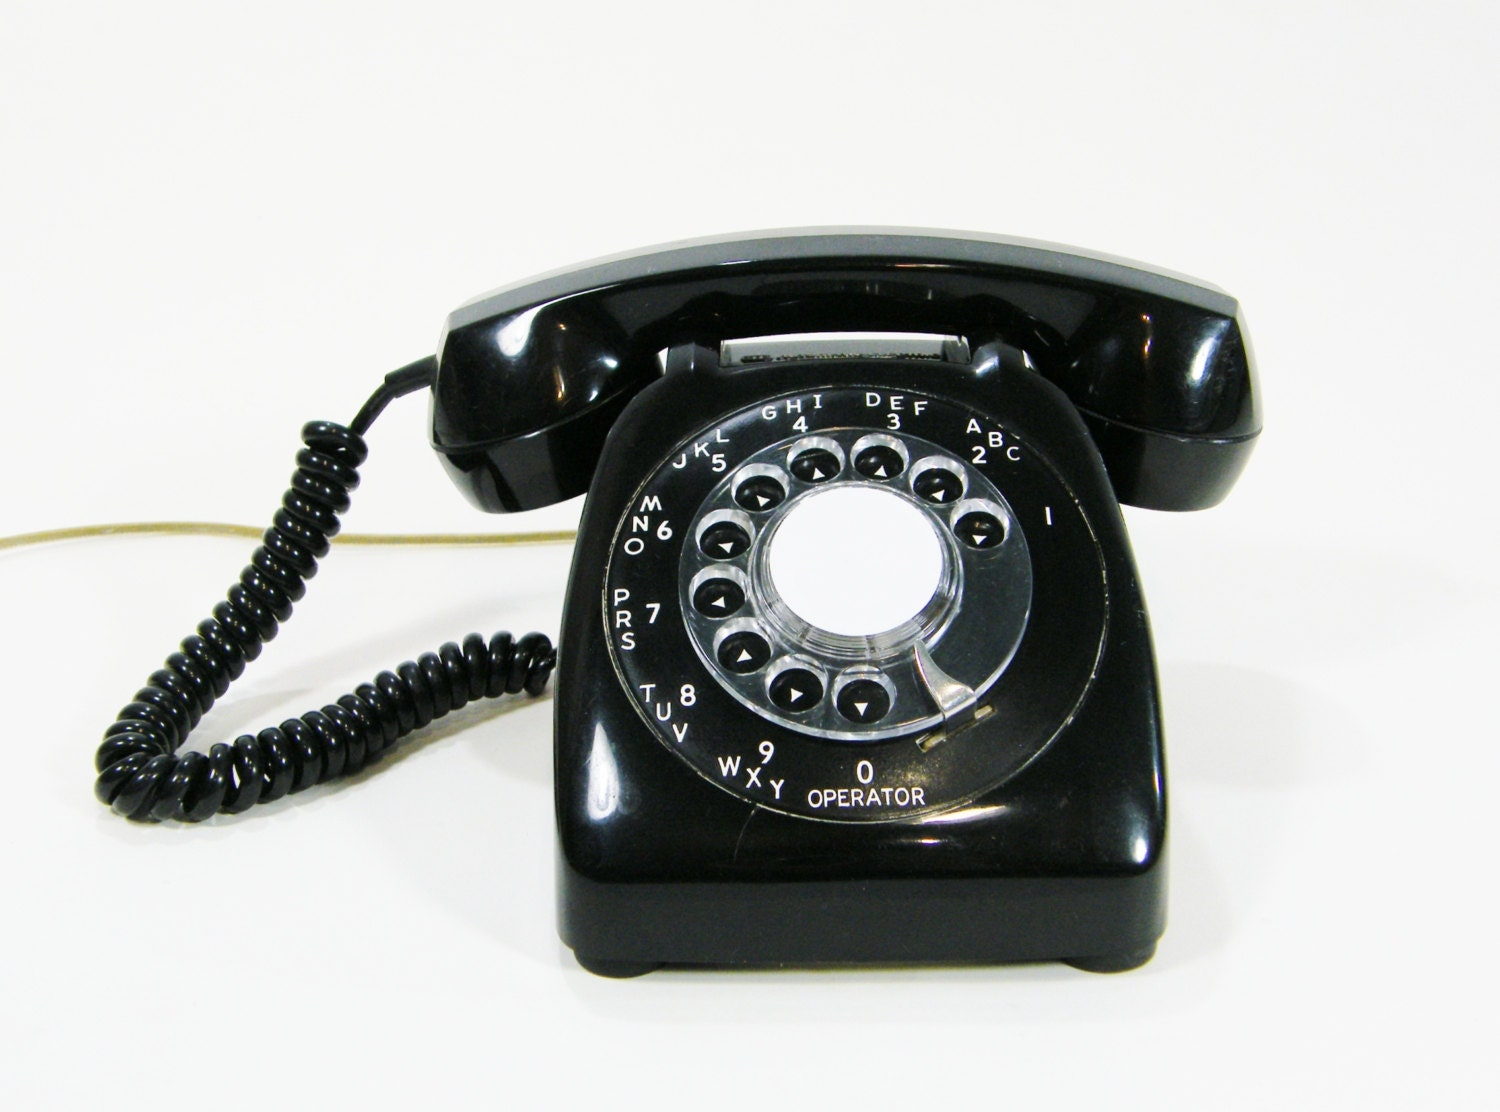 Vintage Telephone Black rotary dial phone Works